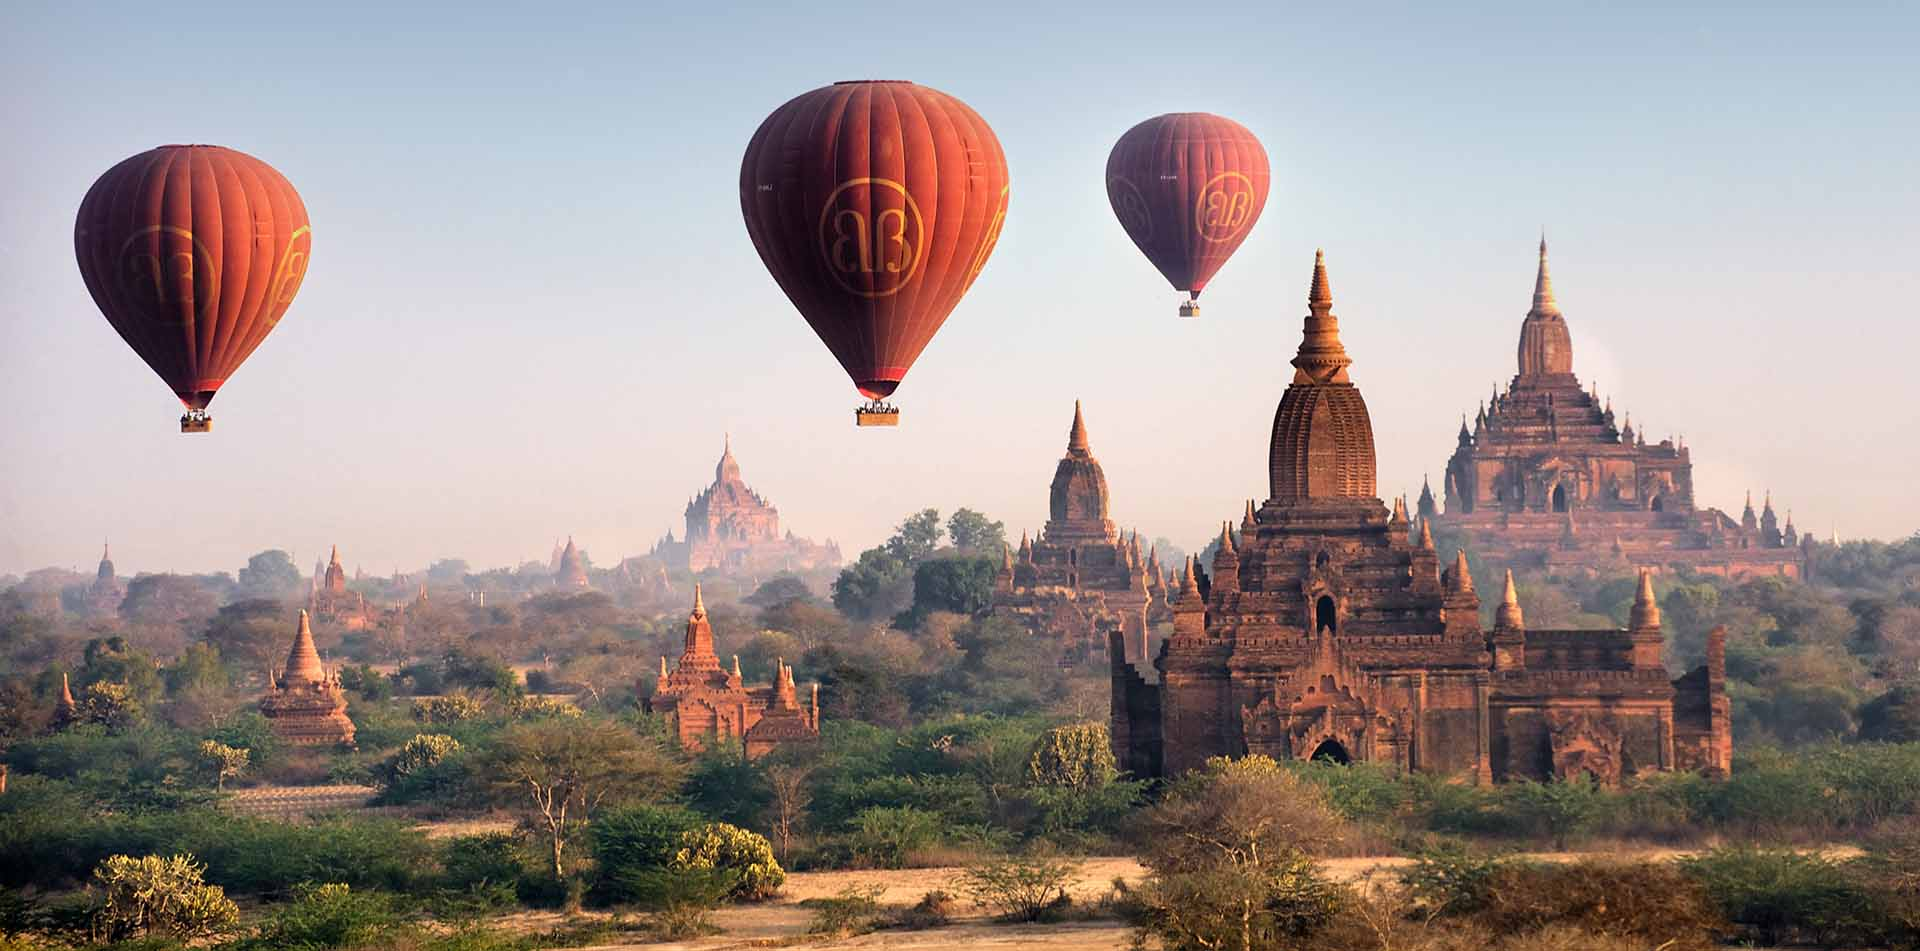 Asia Myanmar Bagan scenic hot air balloon rides ancient temples remote jungle landscape - luxury vacation destinations